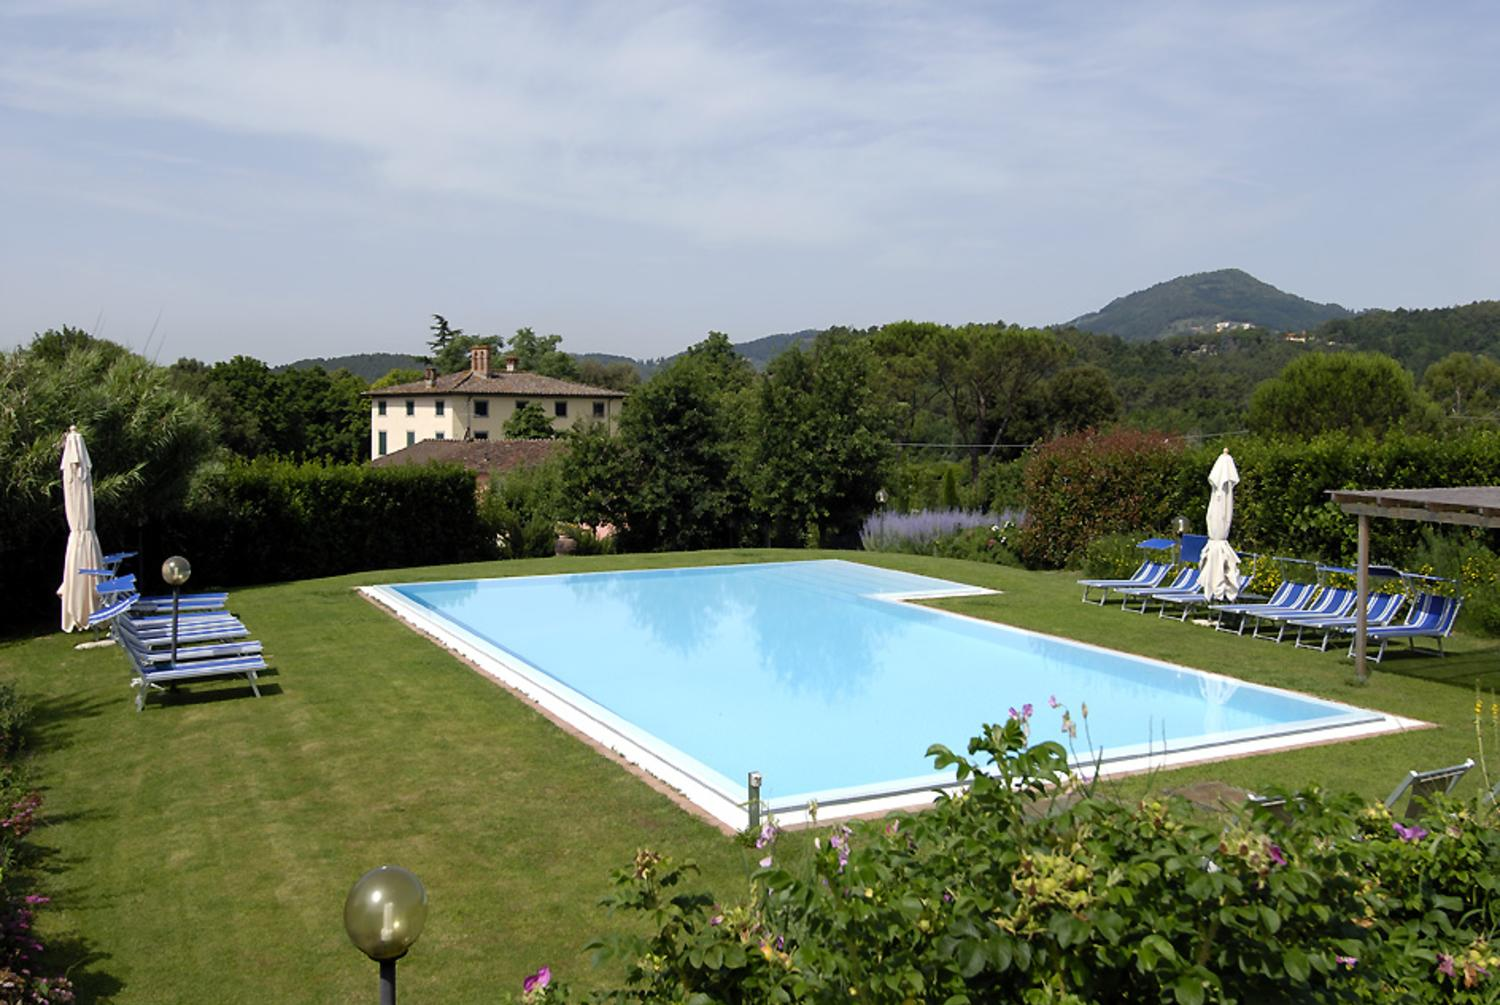 Outdoor Pool 1, Il Maniero, Lucca, Tuscany.